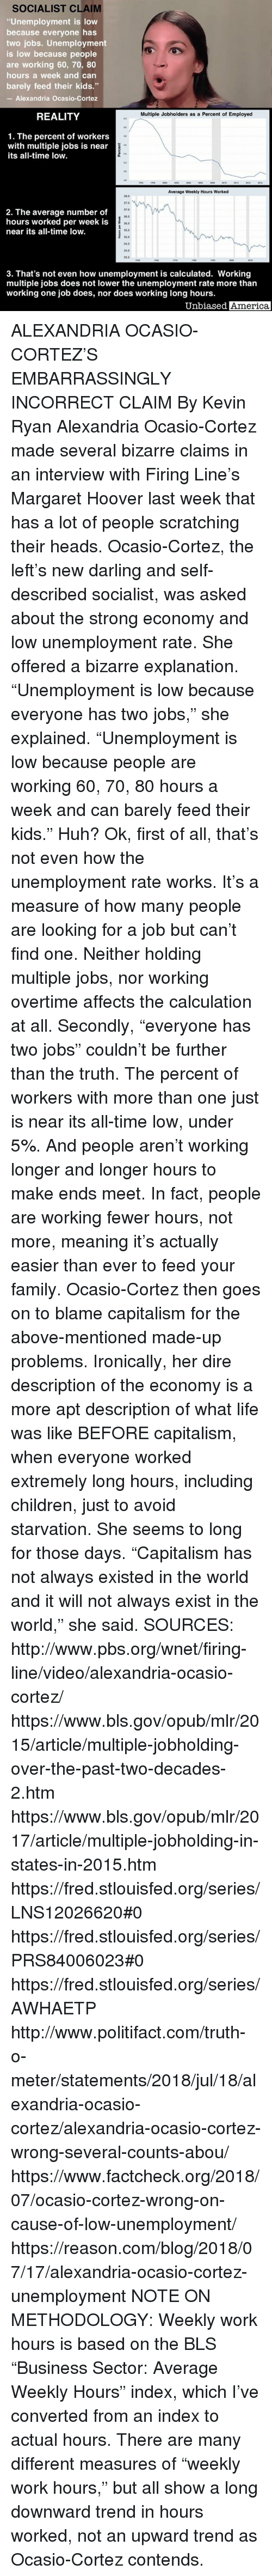 """America, Children, and Family: SOCIALIST CLAIM  """"Unemployment is low  because everyone has  two jobs. Unemployment  is low because people  are working 60, 70, 80  hours a week and can  barely feed their kids.""""  -Alexandria Ocasio-Cortez  REALITY  Multiple Jobholders as a Percent of Employed  1. The percent of workers  with multiple jobs is near  its all-time low.  Average Weekly Hours Worked  7.5  37,0  36.5  2. The average number of  hours worked per week is  near its all-time low.  35.5  35.0  45  34.0  3. That's not even how unemployment is calculated. Working  multiple jobs does not lower the unemployment rate more than  working one job does, nor does working long hours.  Unbiased  America ALEXANDRIA OCASIO-CORTEZ'S EMBARRASSINGLY INCORRECT CLAIM By Kevin Ryan  Alexandria Ocasio-Cortez made several bizarre claims in an interview with Firing Line's Margaret Hoover last week that has a lot of people scratching their heads.  Ocasio-Cortez, the left's new darling and self-described socialist, was asked about the strong economy and low unemployment rate.  She offered a bizarre explanation.  """"Unemployment is low because everyone has two jobs,"""" she explained.  """"Unemployment is low because people are working 60, 70, 80 hours a week and can barely feed their kids.""""  Huh?  Ok, first of all, that's not even how the unemployment rate works.  It's a measure of how many people are looking for a job but can't find one.  Neither holding multiple jobs, nor working overtime affects the calculation at all.  Secondly, """"everyone has two jobs"""" couldn't be further than the truth.  The percent of workers with more than one just is near its all-time low, under 5%.  And people aren't working longer and longer hours to make ends meet.  In fact, people are working fewer hours, not more, meaning it's actually easier than ever to feed your family.  Ocasio-Cortez then goes on to blame capitalism for the above-mentioned made-up problems.  Ironically, her dire description of the economy is a mo"""